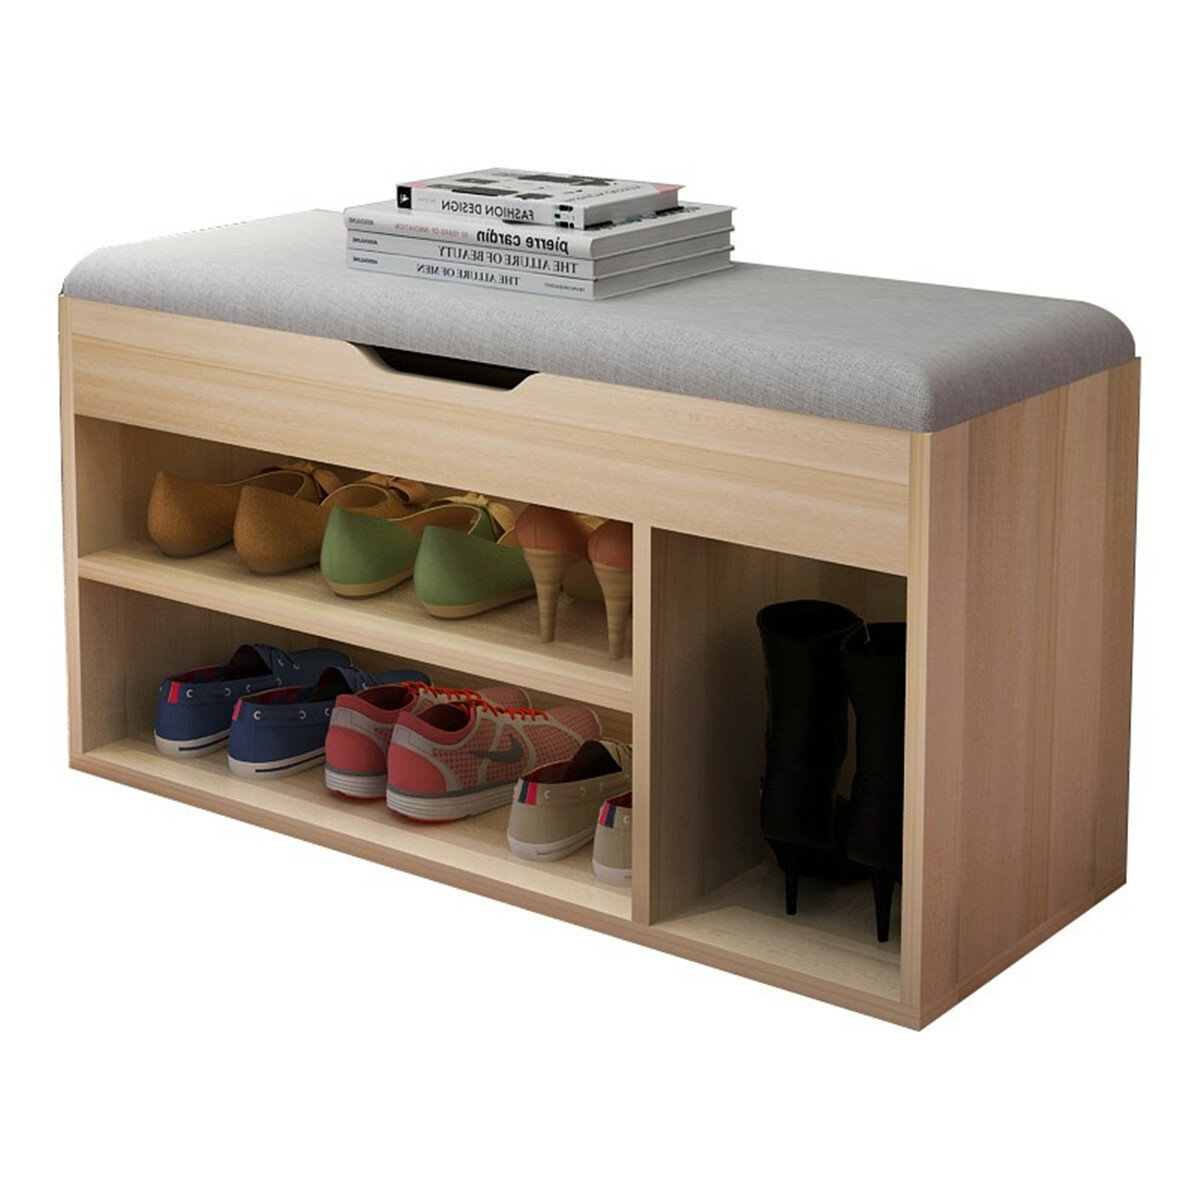 <US Instock> Shoe Rack Shoe Storage Stool with Flip Cover, Entryway Shoe Bench Rack Shoes Organizer with Sponge Cushion Seat - Suitable for Foyer, Living Room, Bedroom, 31.5 x 11.9 x 17.8 inch